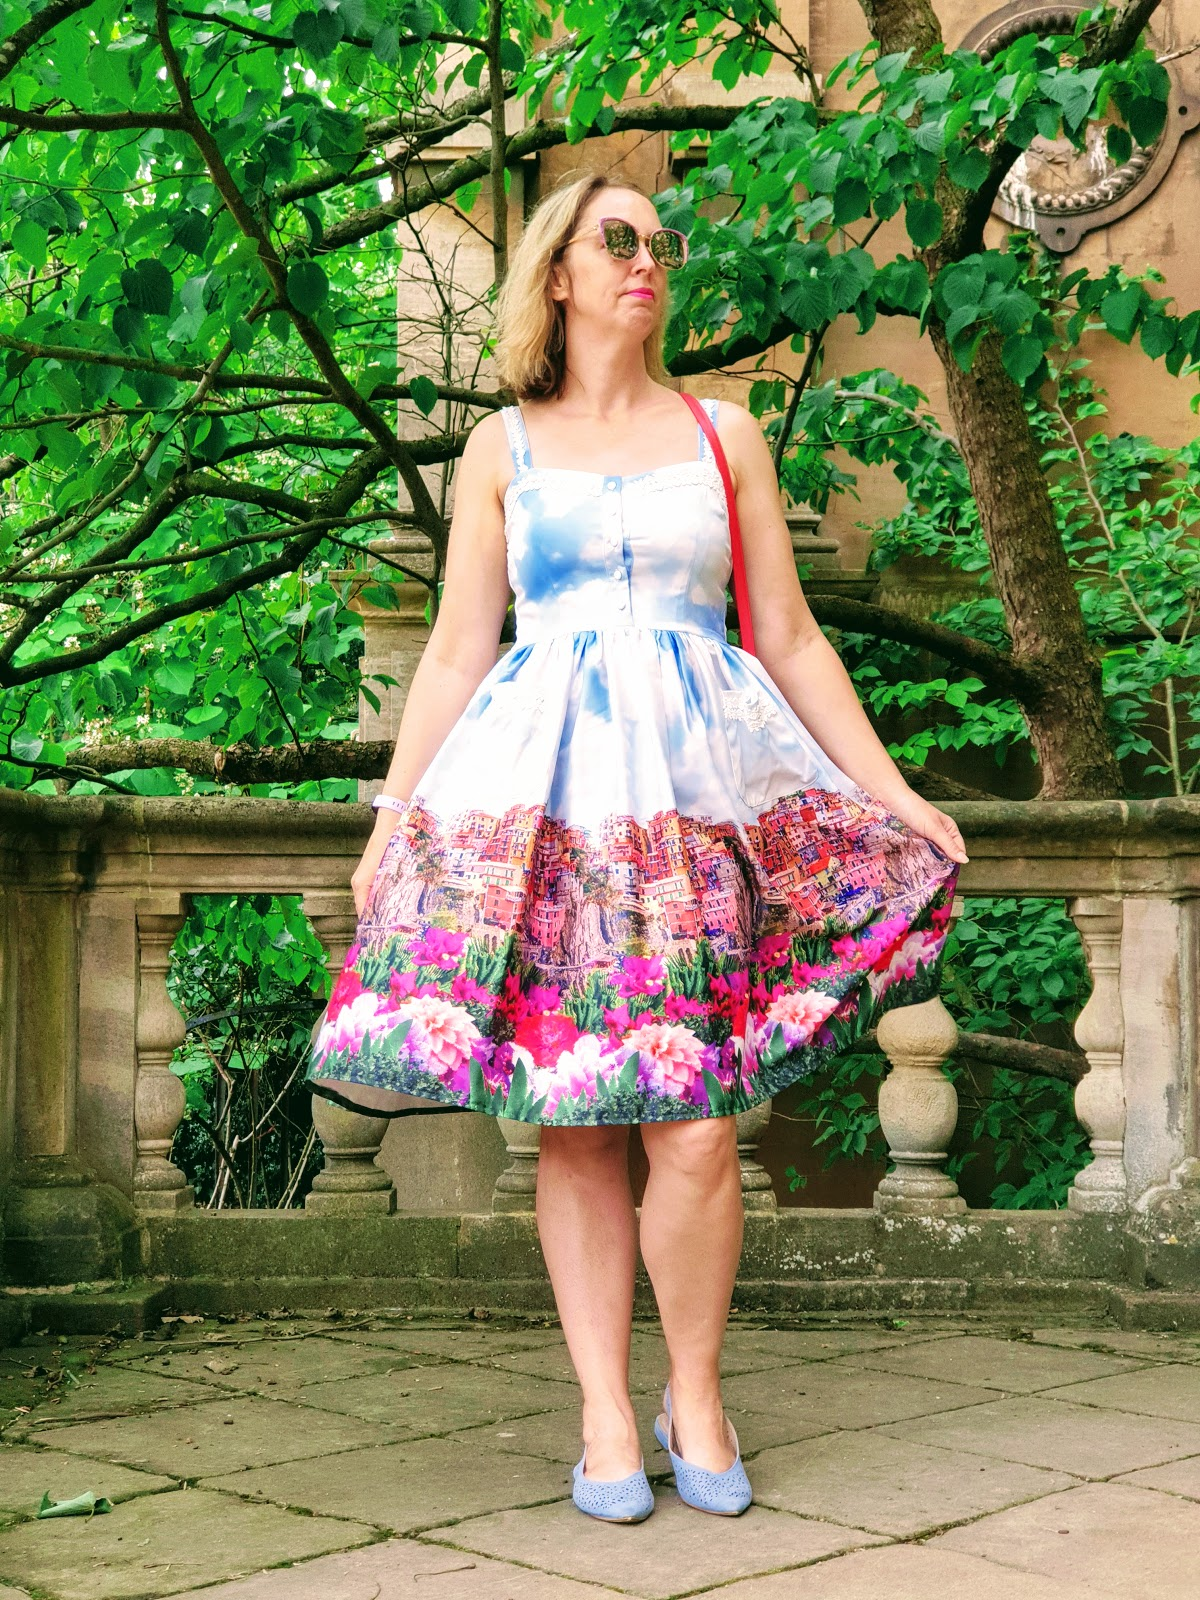 Vintage Afternoon Tea Dress: Over 40 Style.